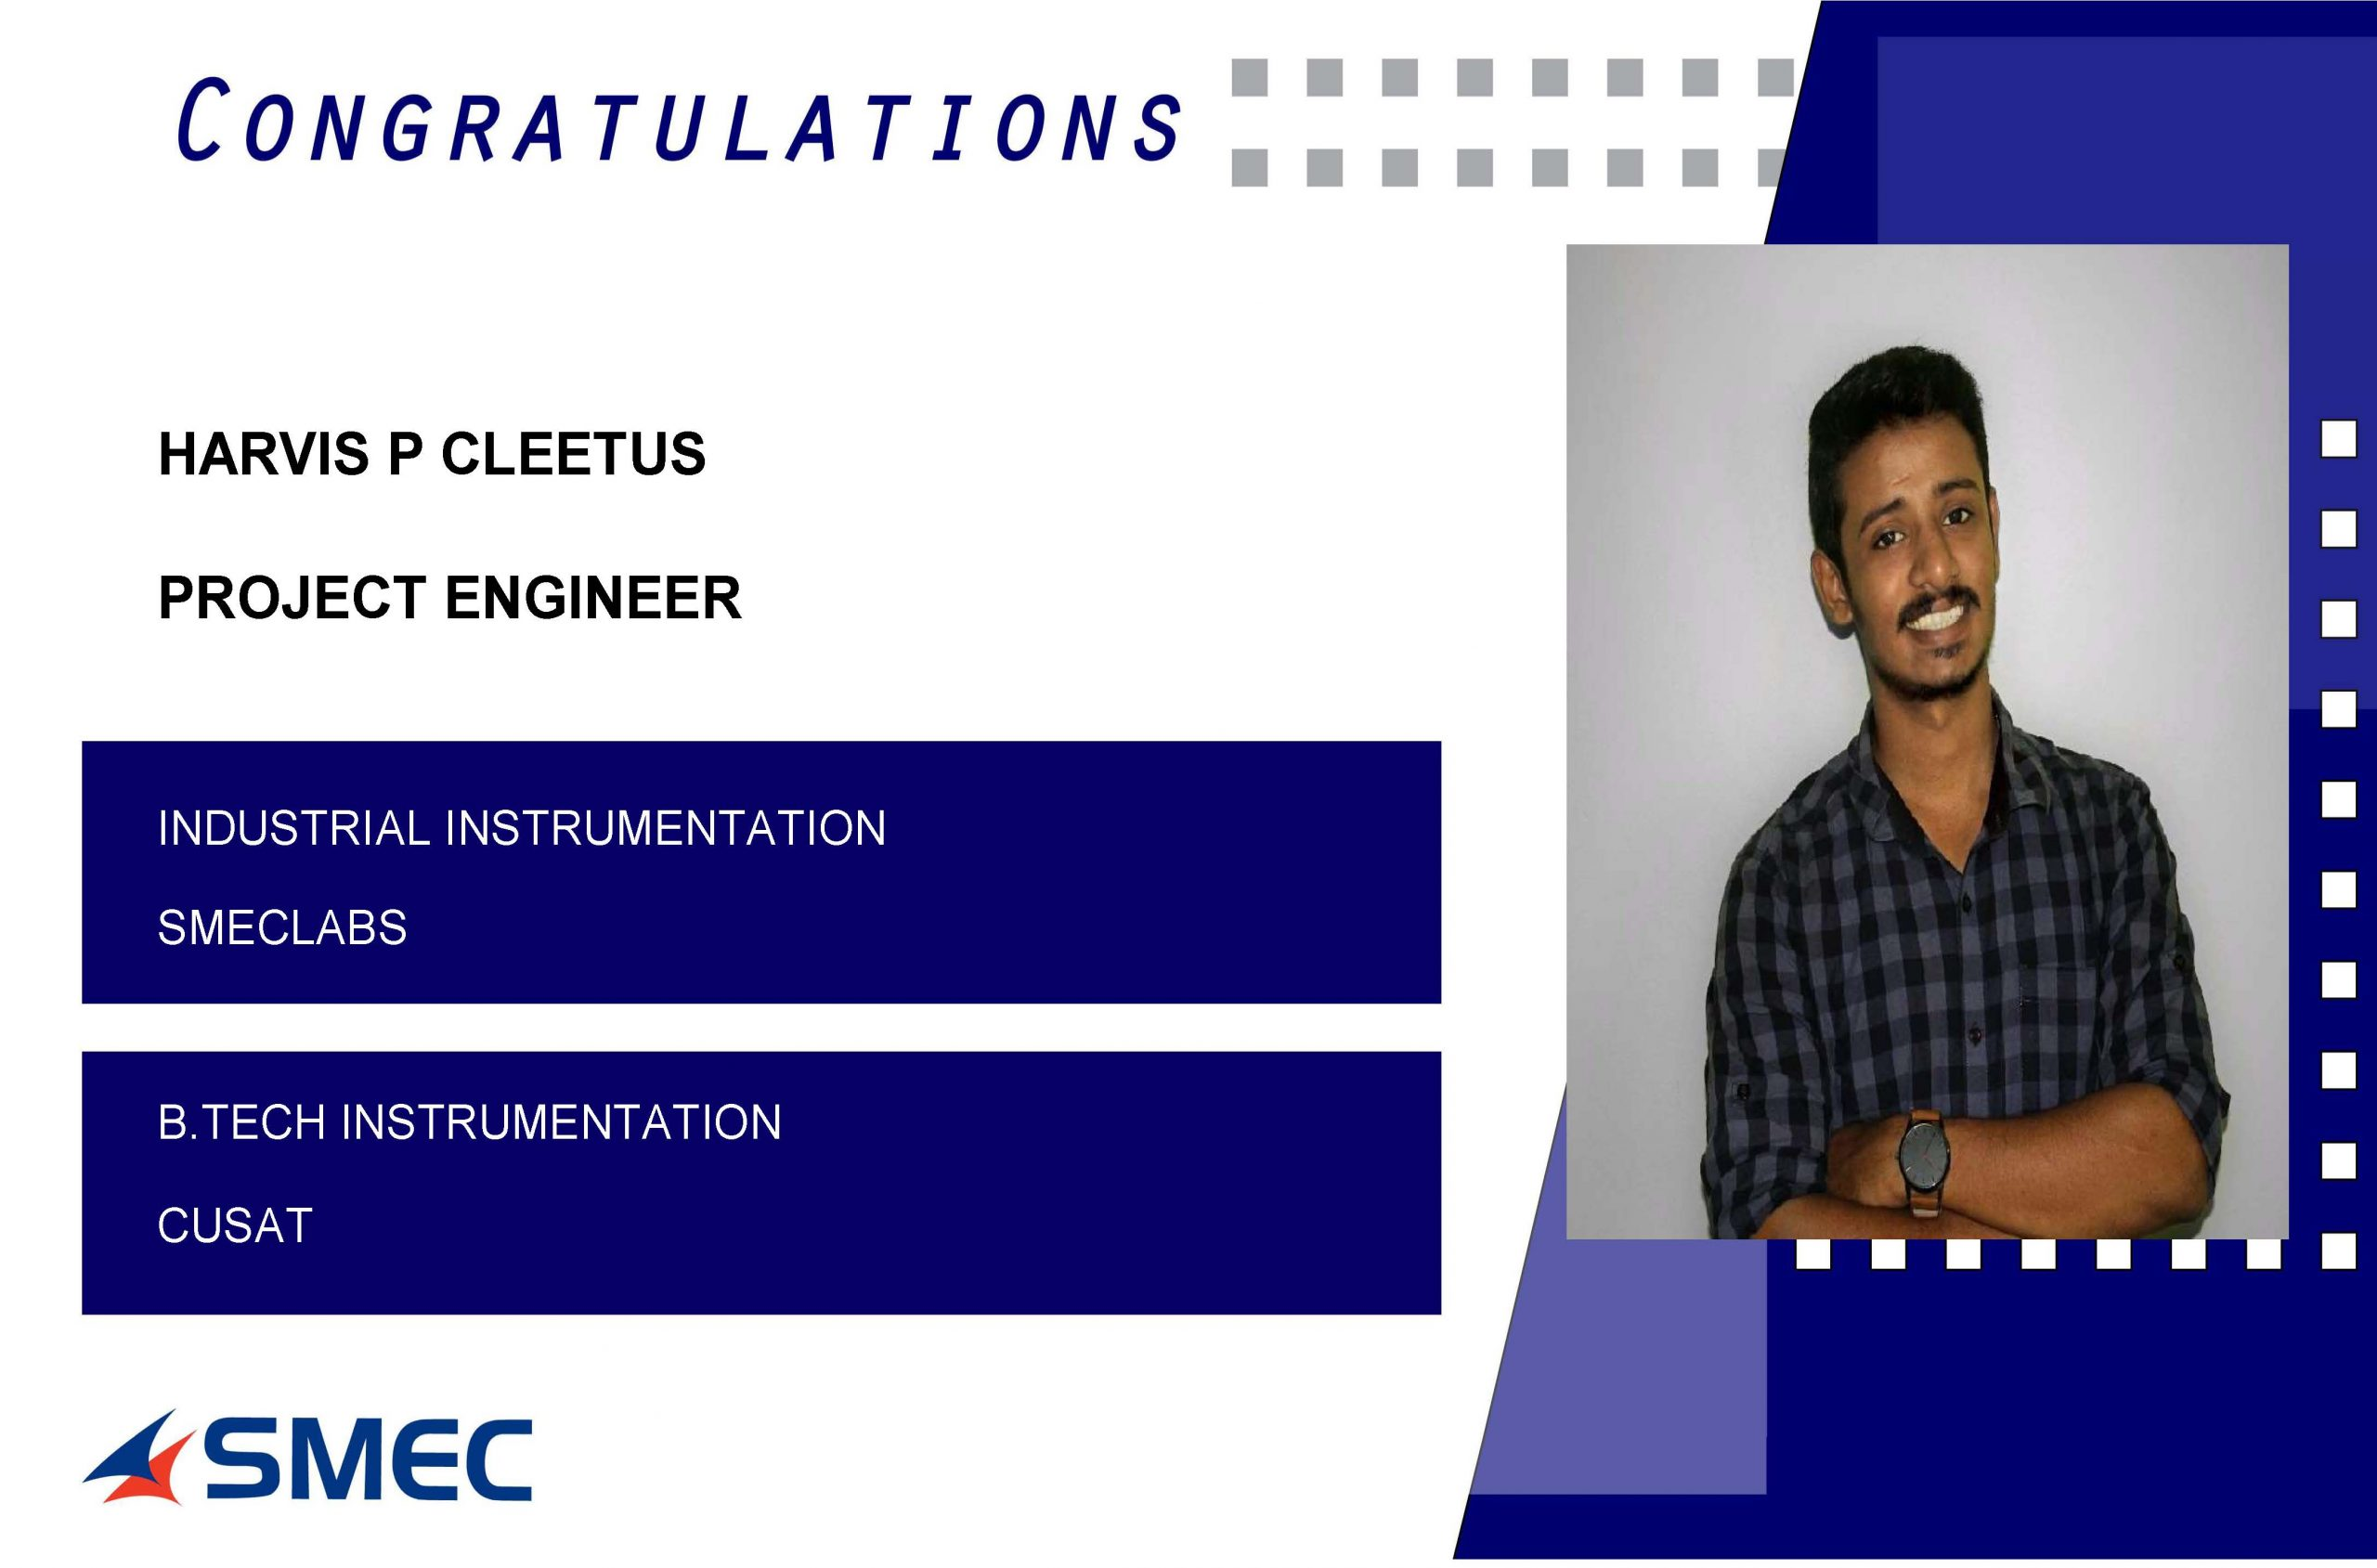 project engineer-harvin p cleetus